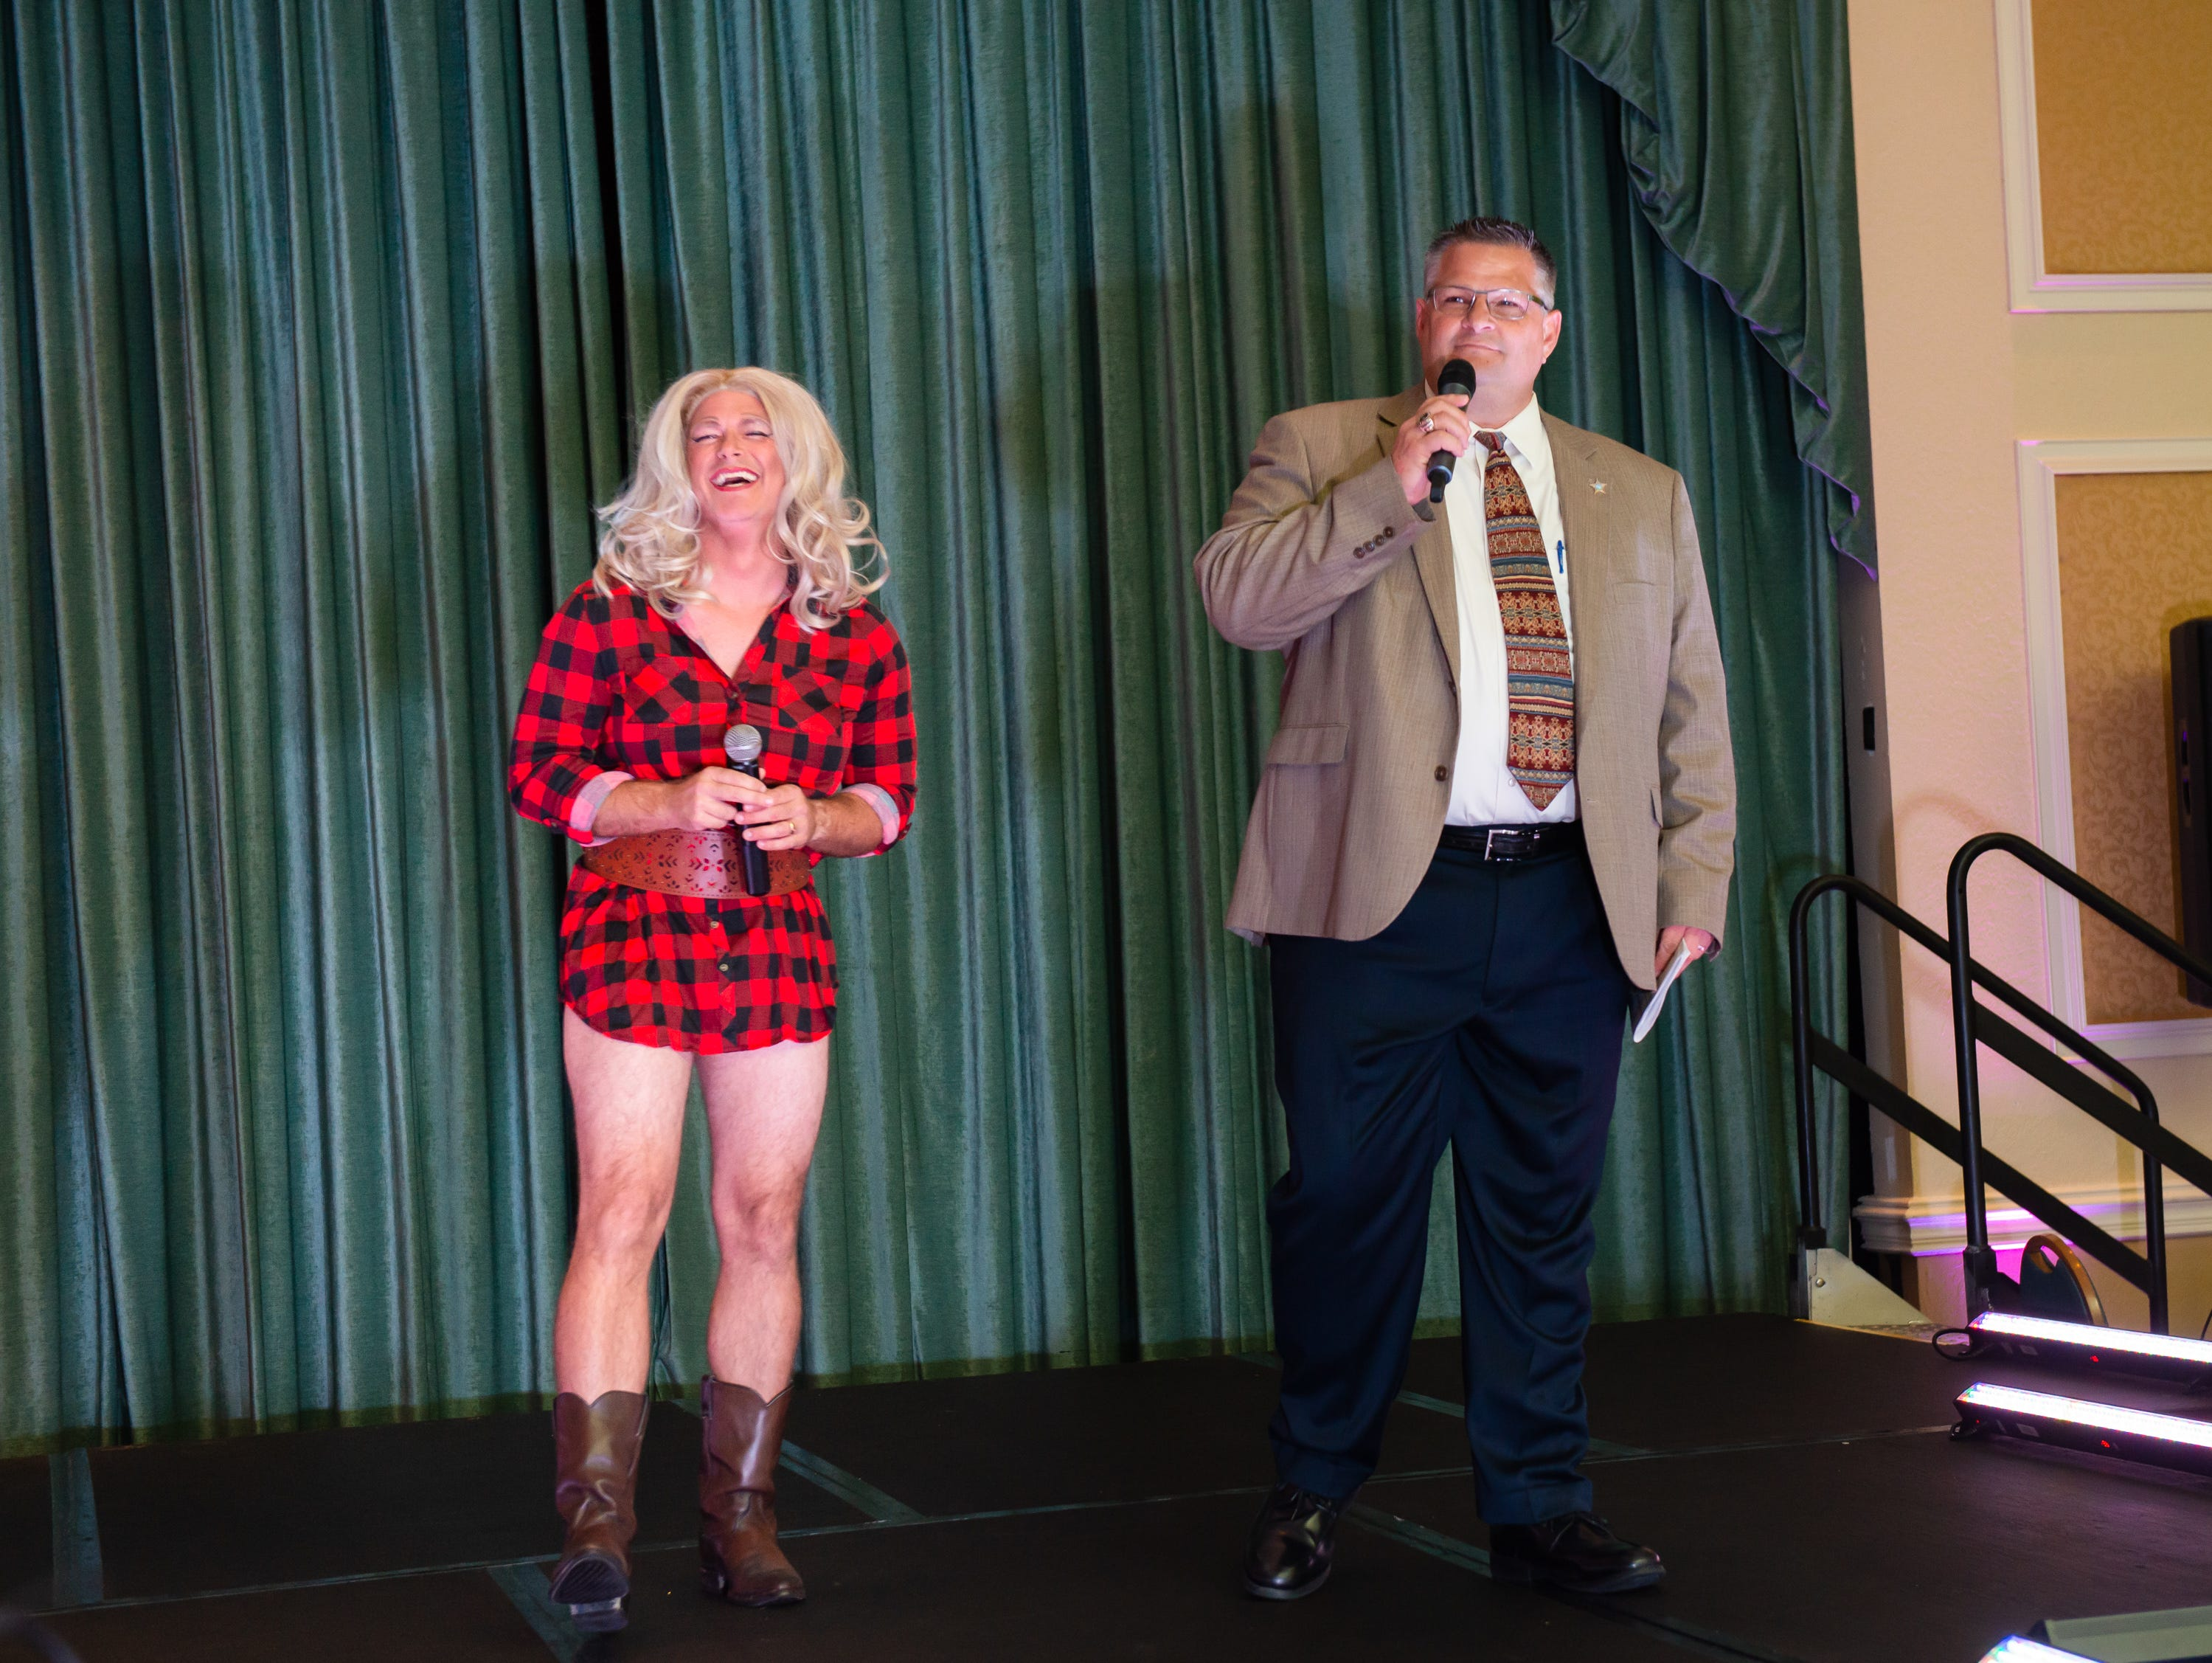 """Sheriff Wayne Ivey comments on Courtney Charvet's performance as Miranda Lambert at the """"Dude Looks Like a Lady"""" event benefitting the Women's Center."""